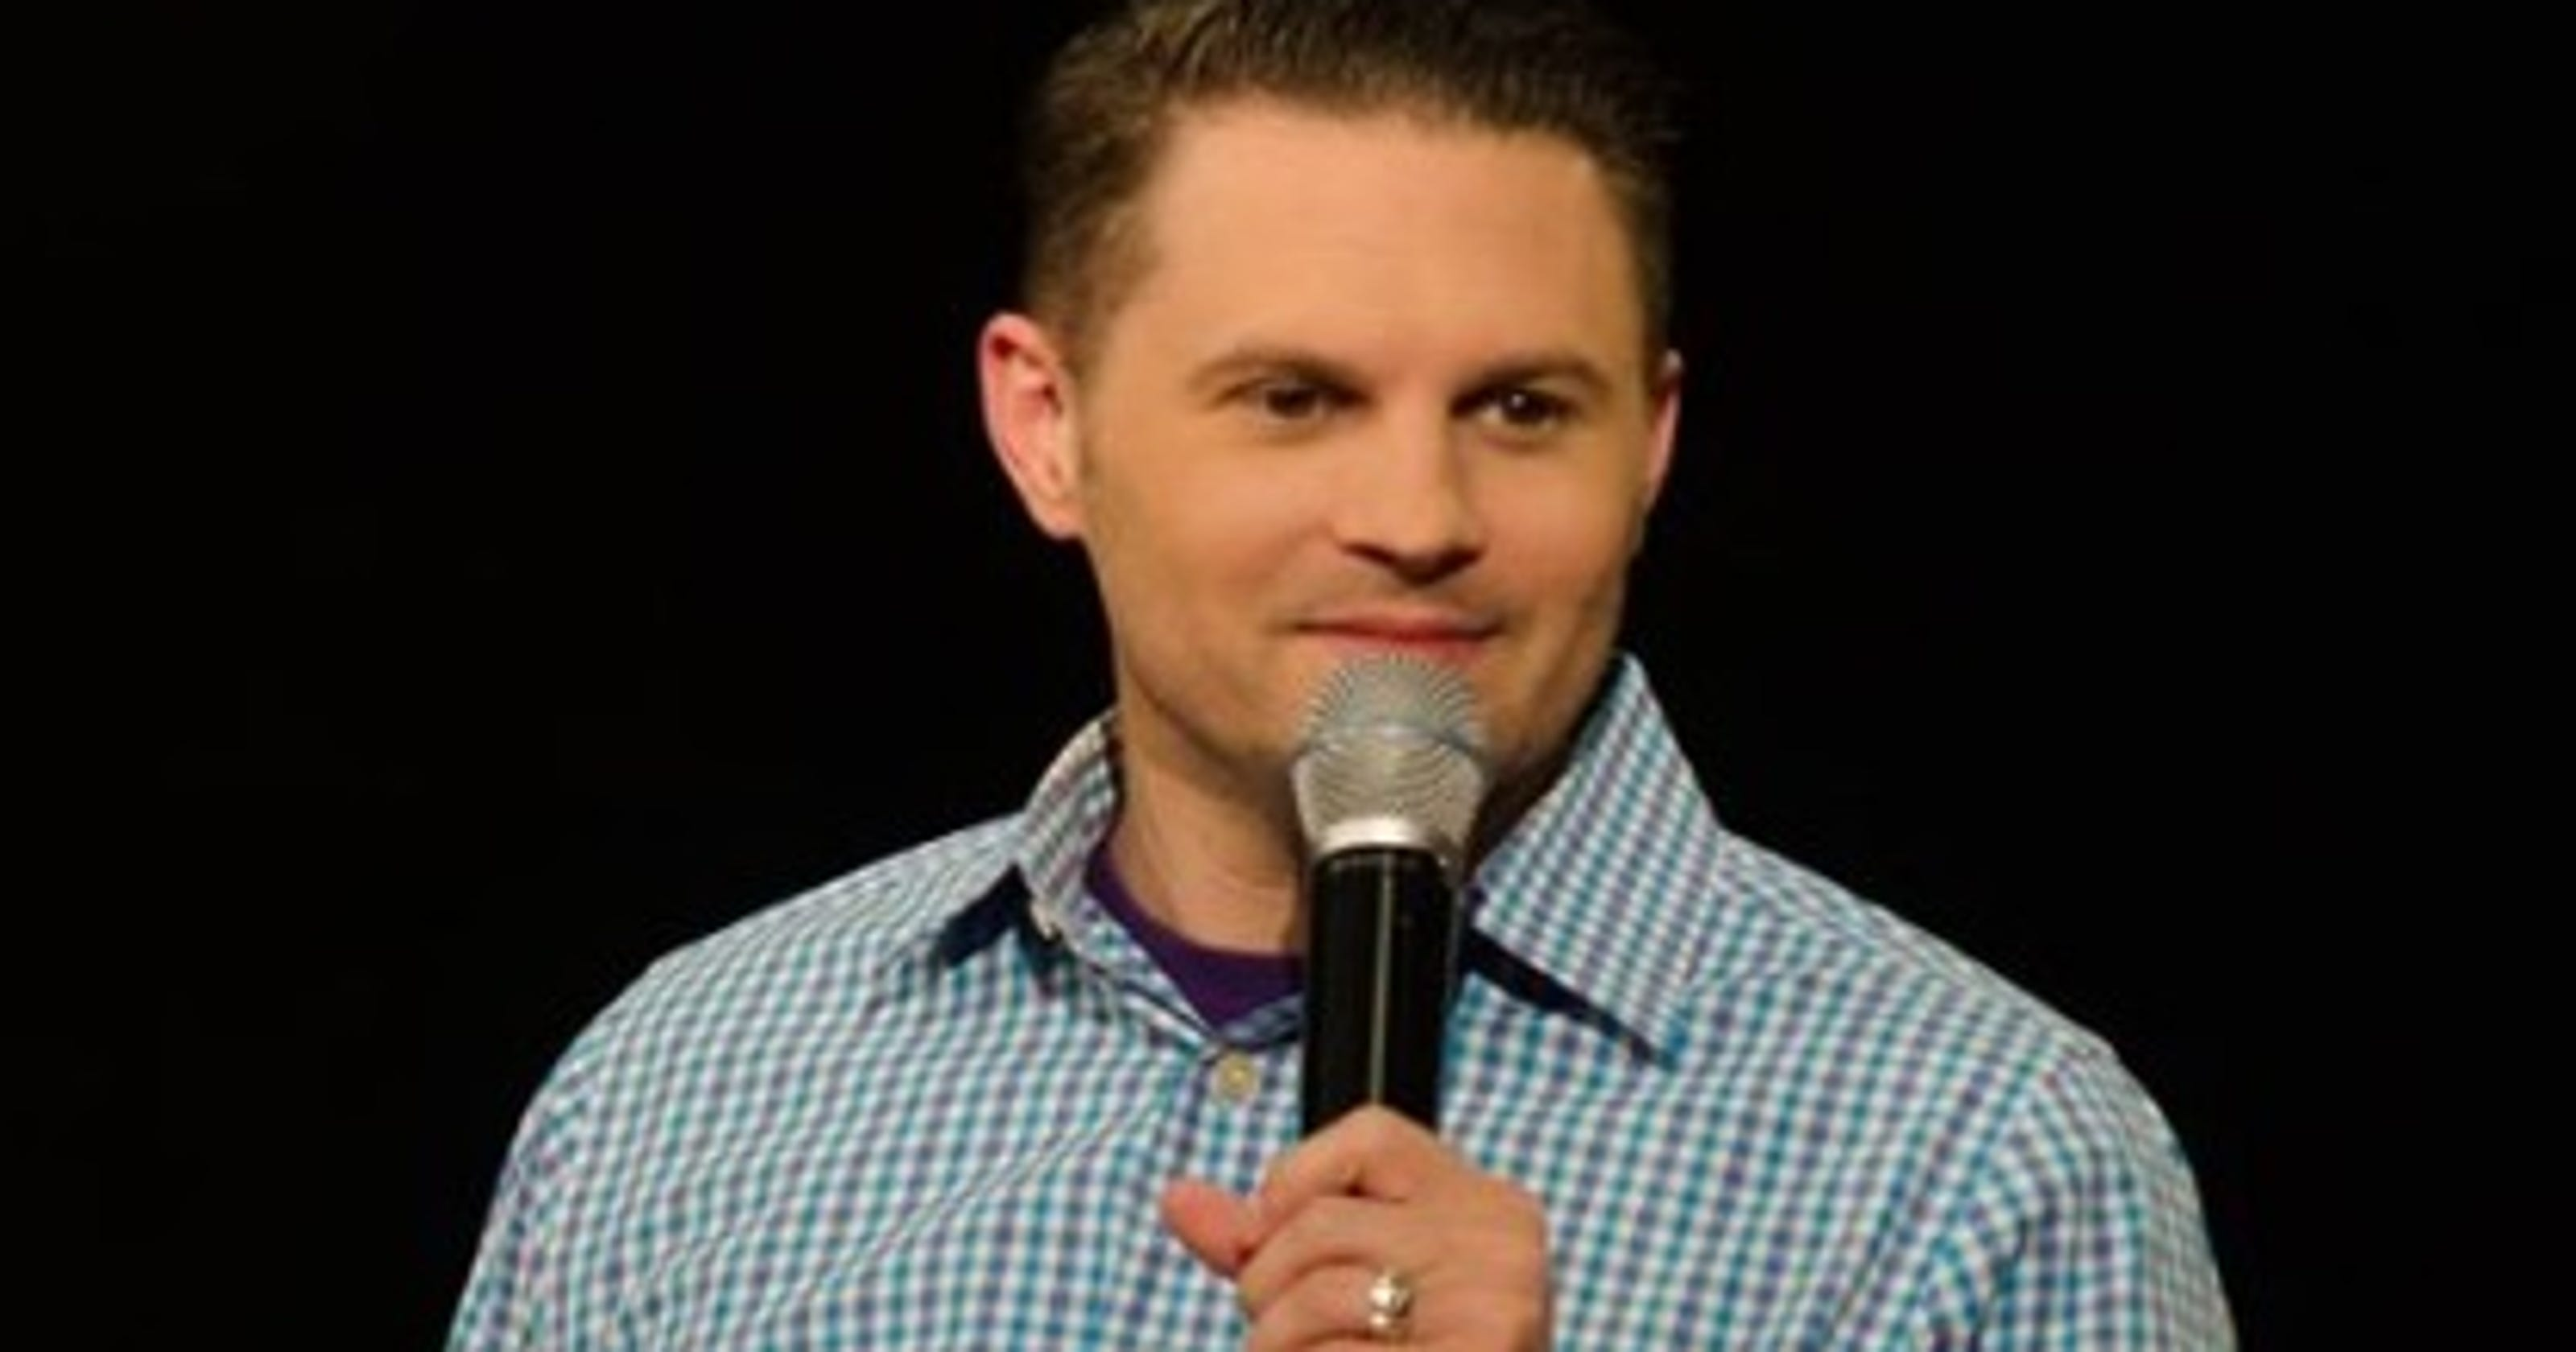 Swaggart's grandson to preach in Evansville